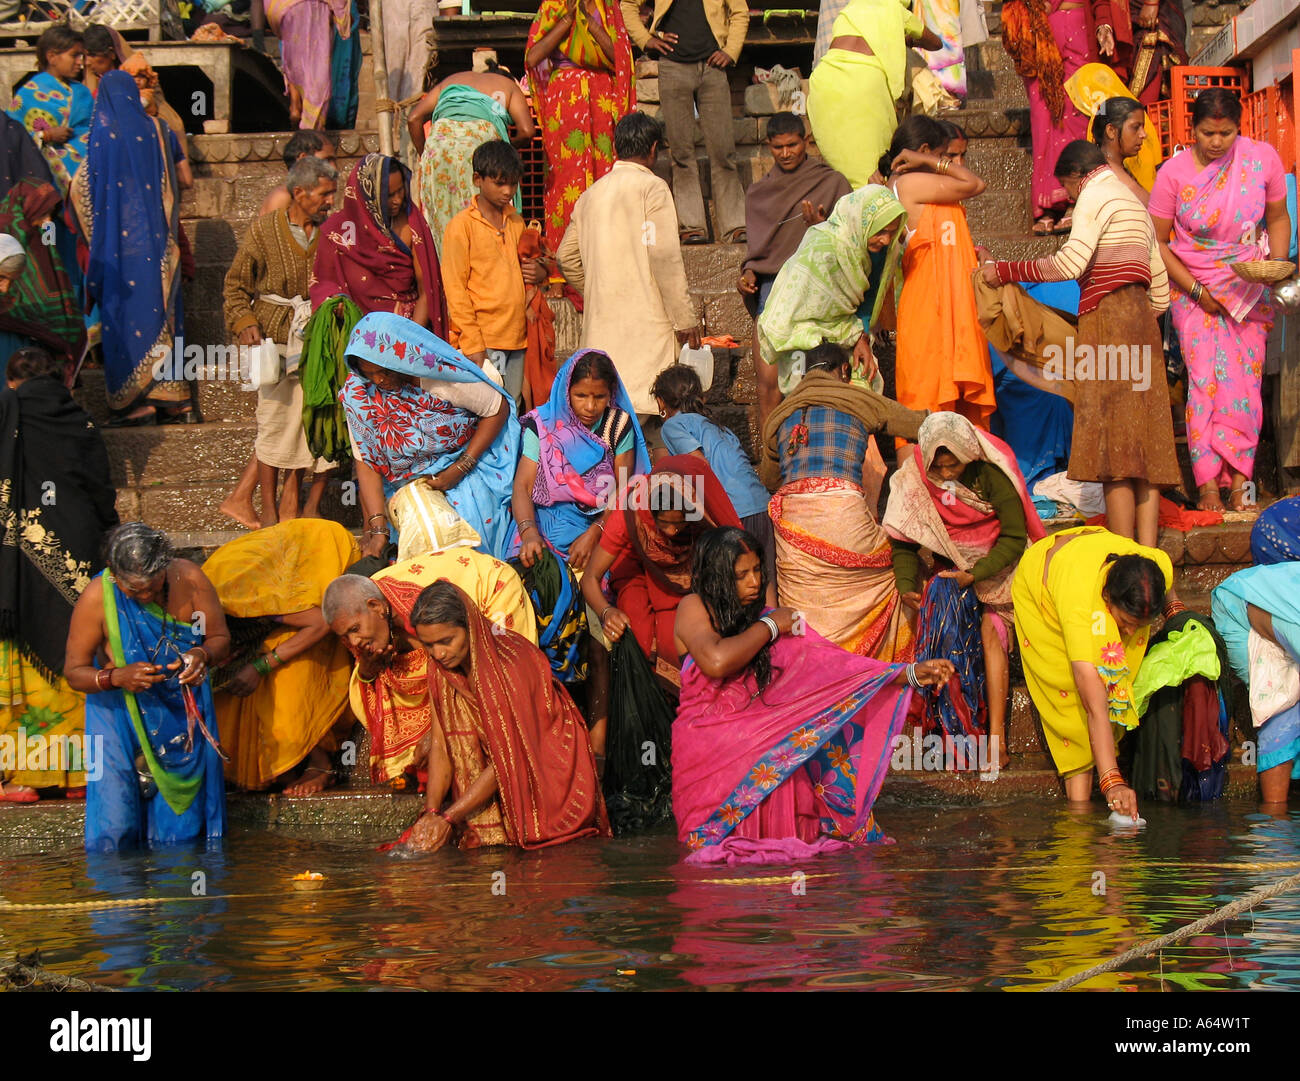 People Bathing And Praying On The Ghats Of The River -2210